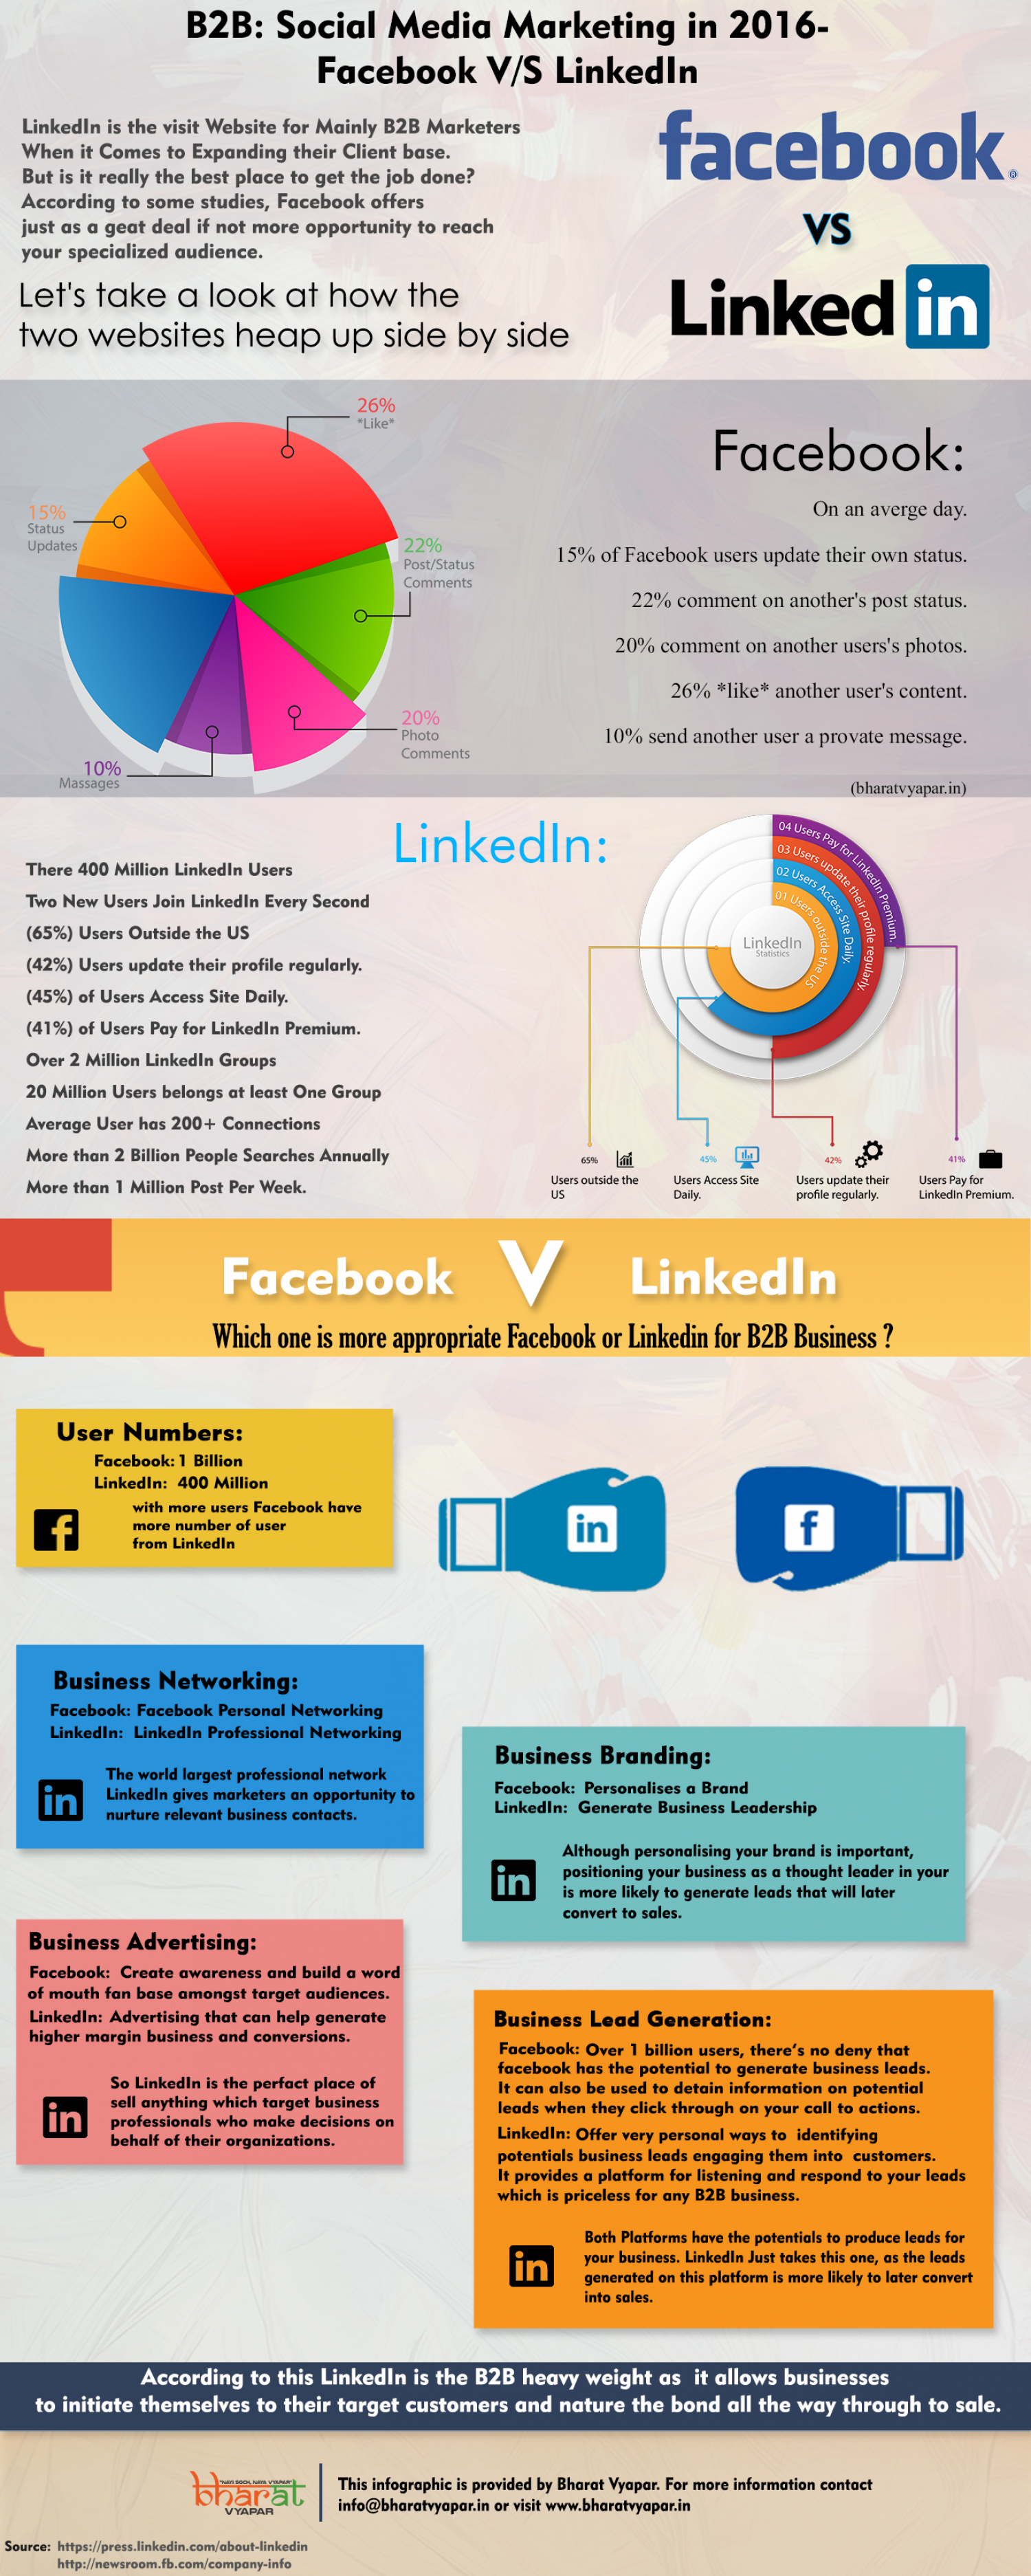 B2B: Social Media Marketing in 2016 - Facebook V/S Linkedin Infographic